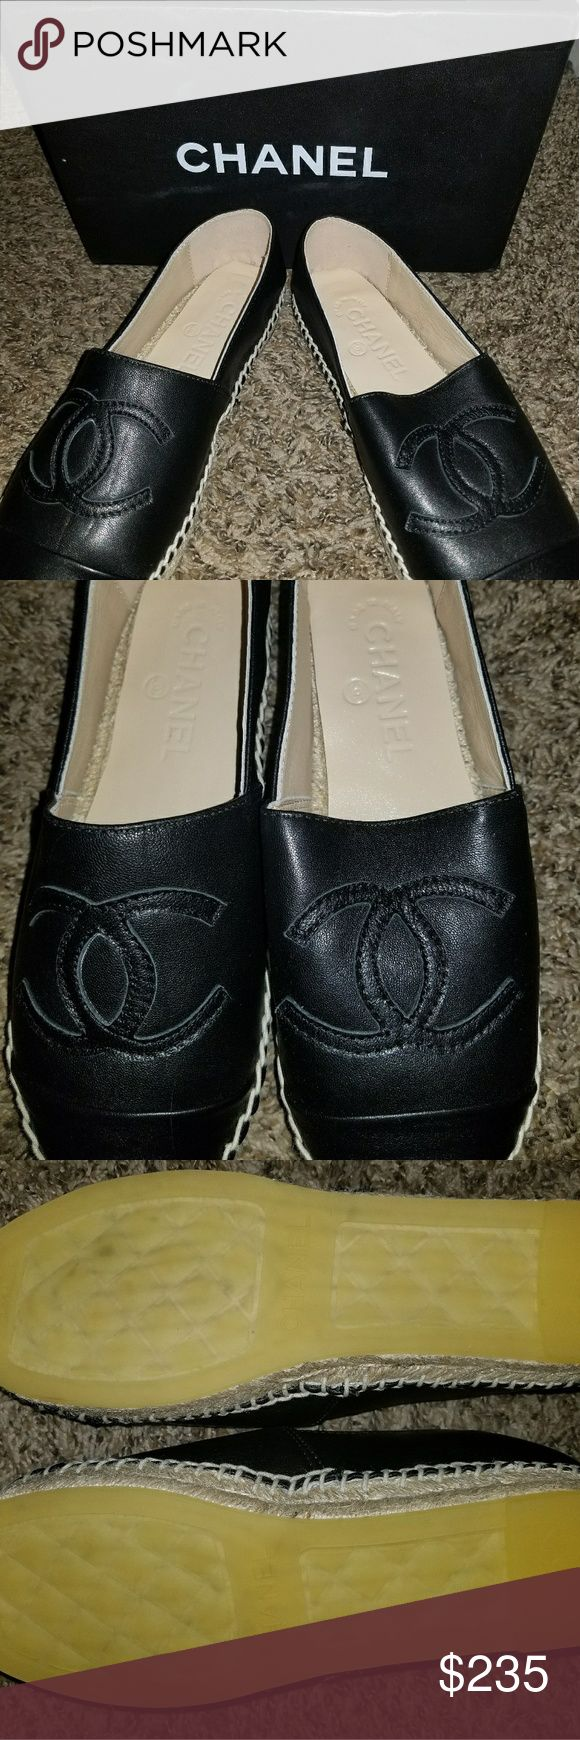 Chanel Slip Ons!! Espardilles!! BRAND NEW These are BRAND NEW!!! These slip ons were a gift and unfortunately do not fit me. I am not certain that these are AUTH, so price reflects uncertainty. These are super comfy and looking to be worn! CHANEL Shoes